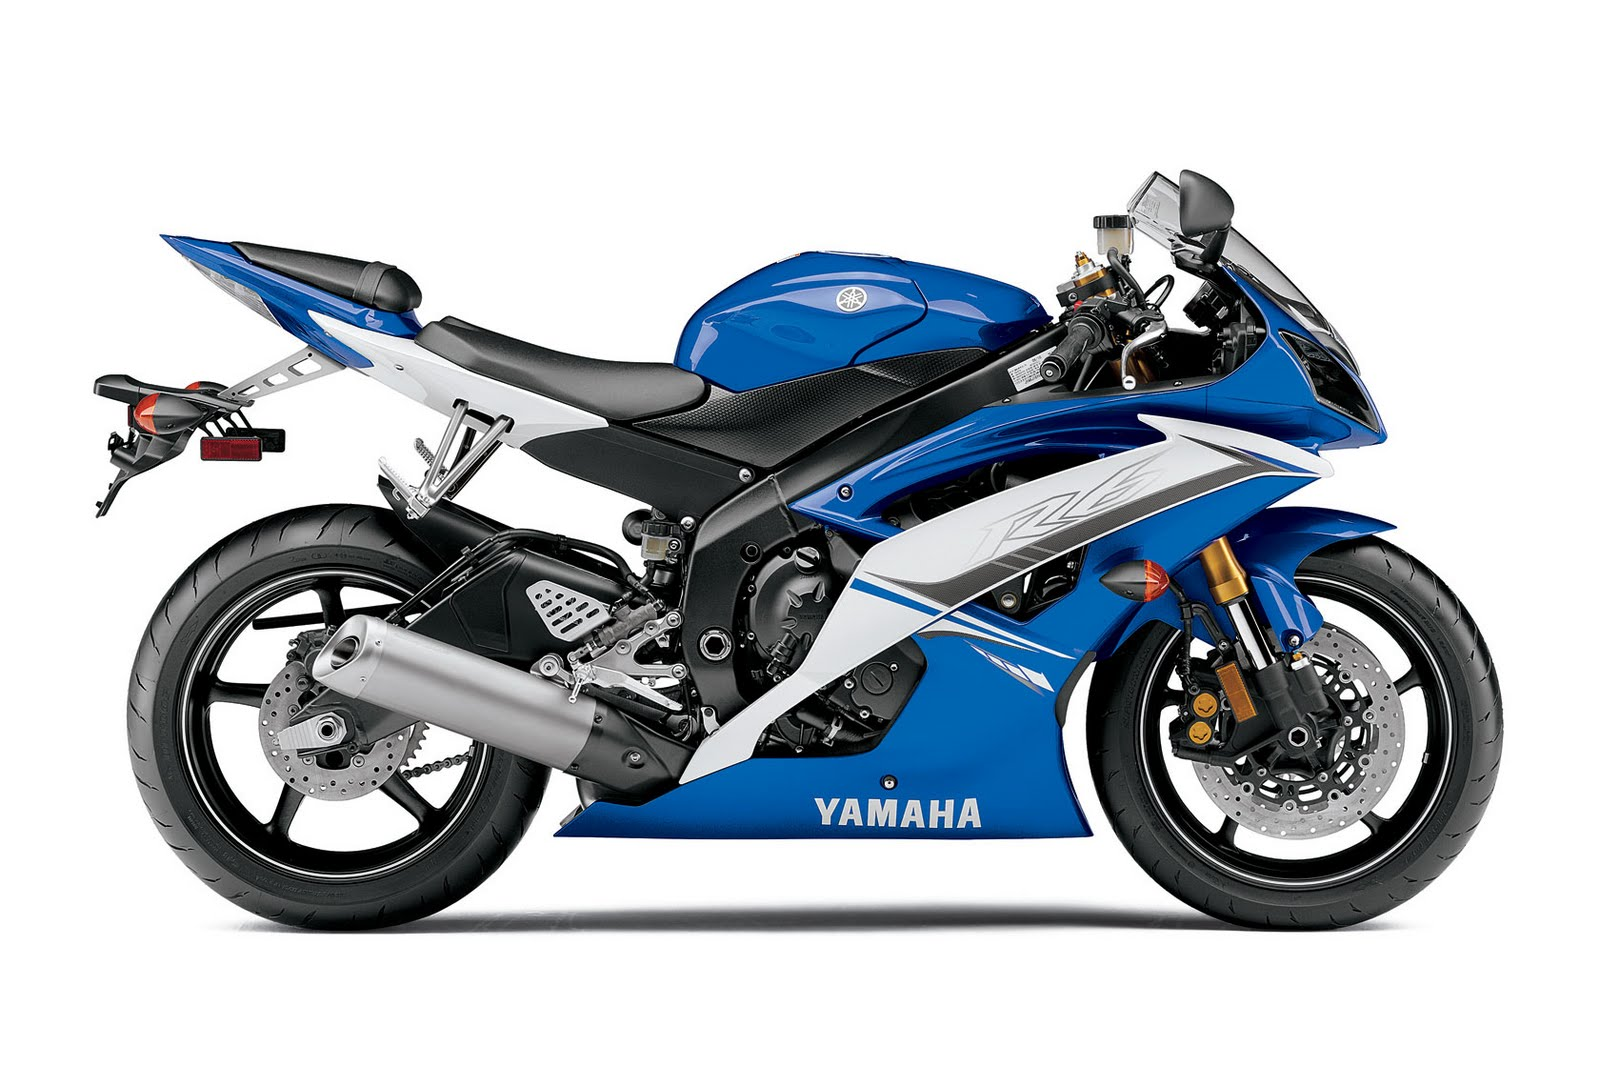 The YZF-R6 is also distinguished as being the first production ...